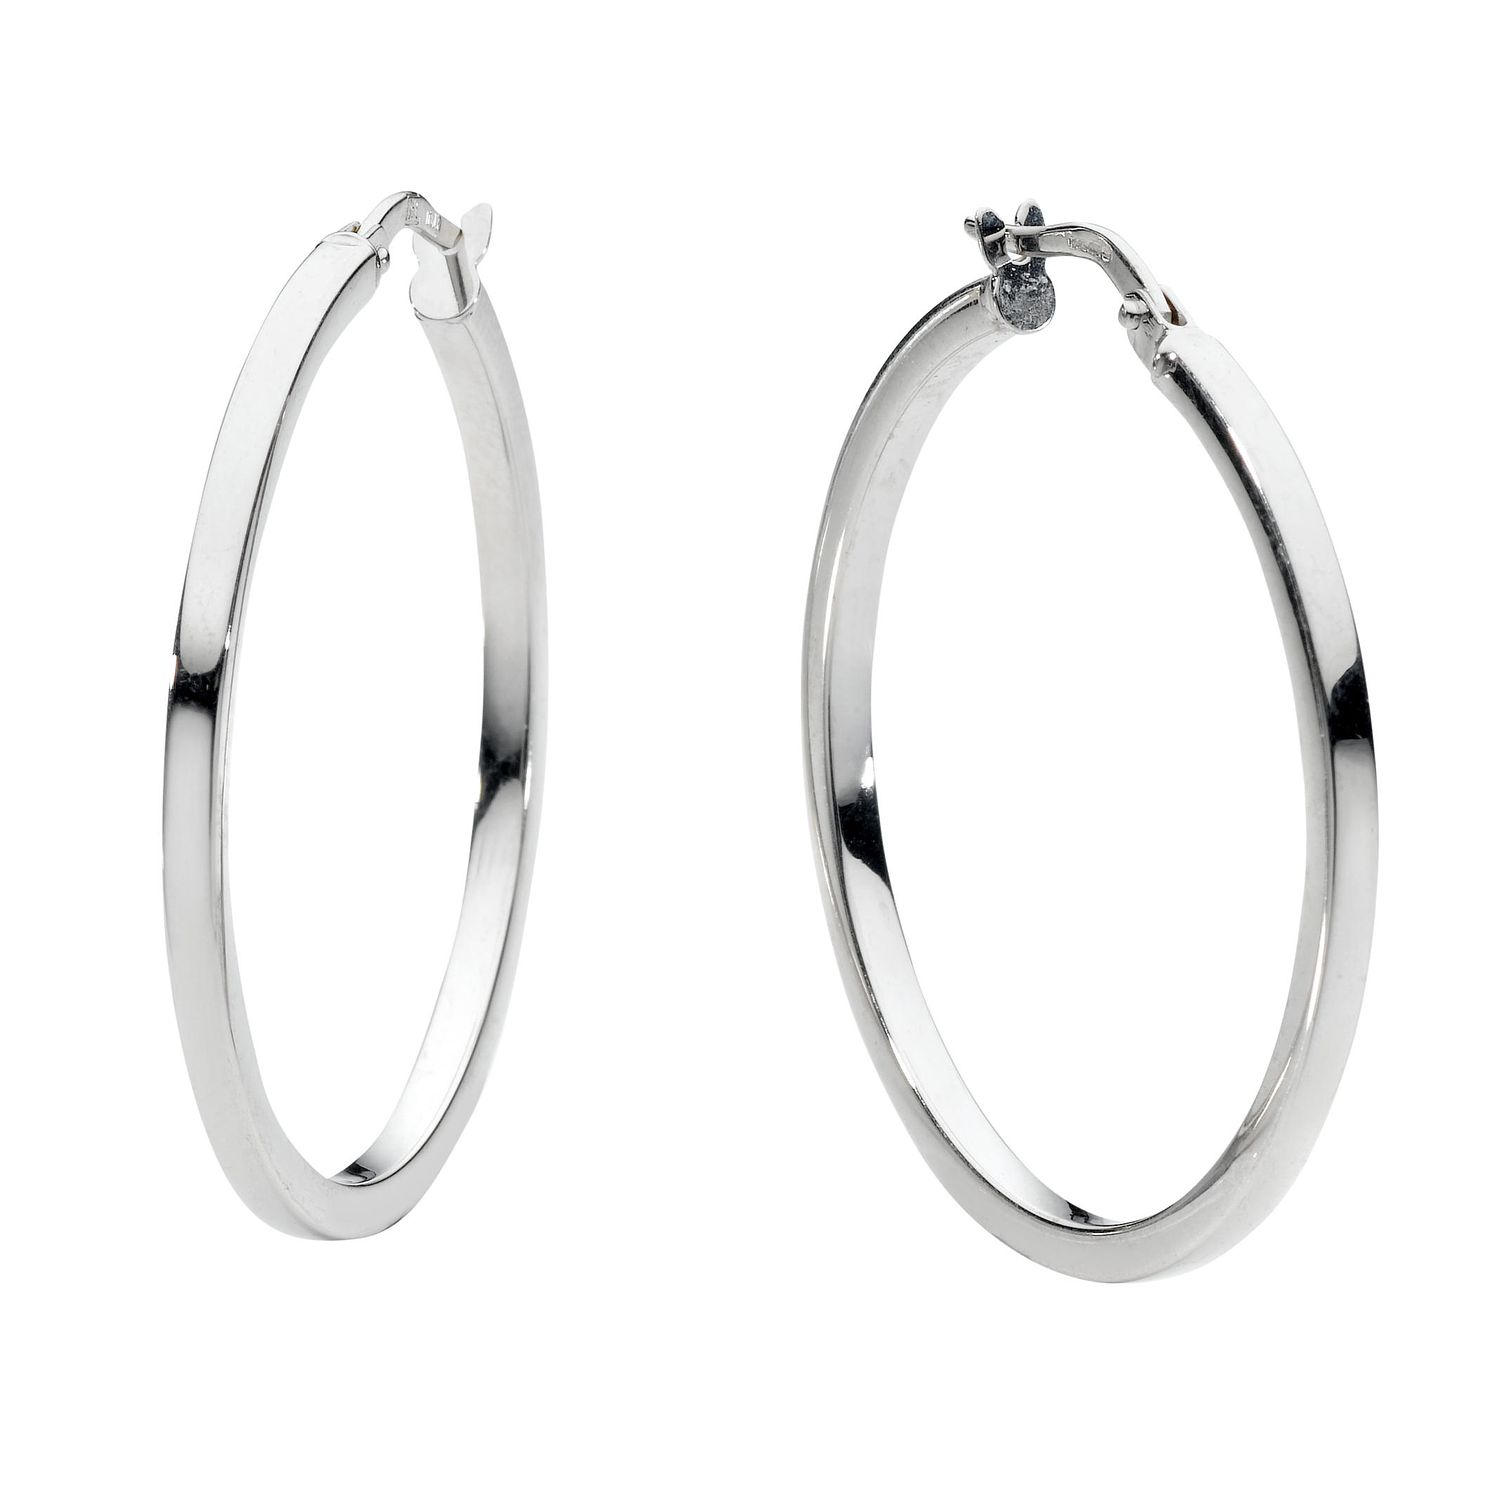 9ct White Gold 30mm Hoop Earrings - Product number 6191819